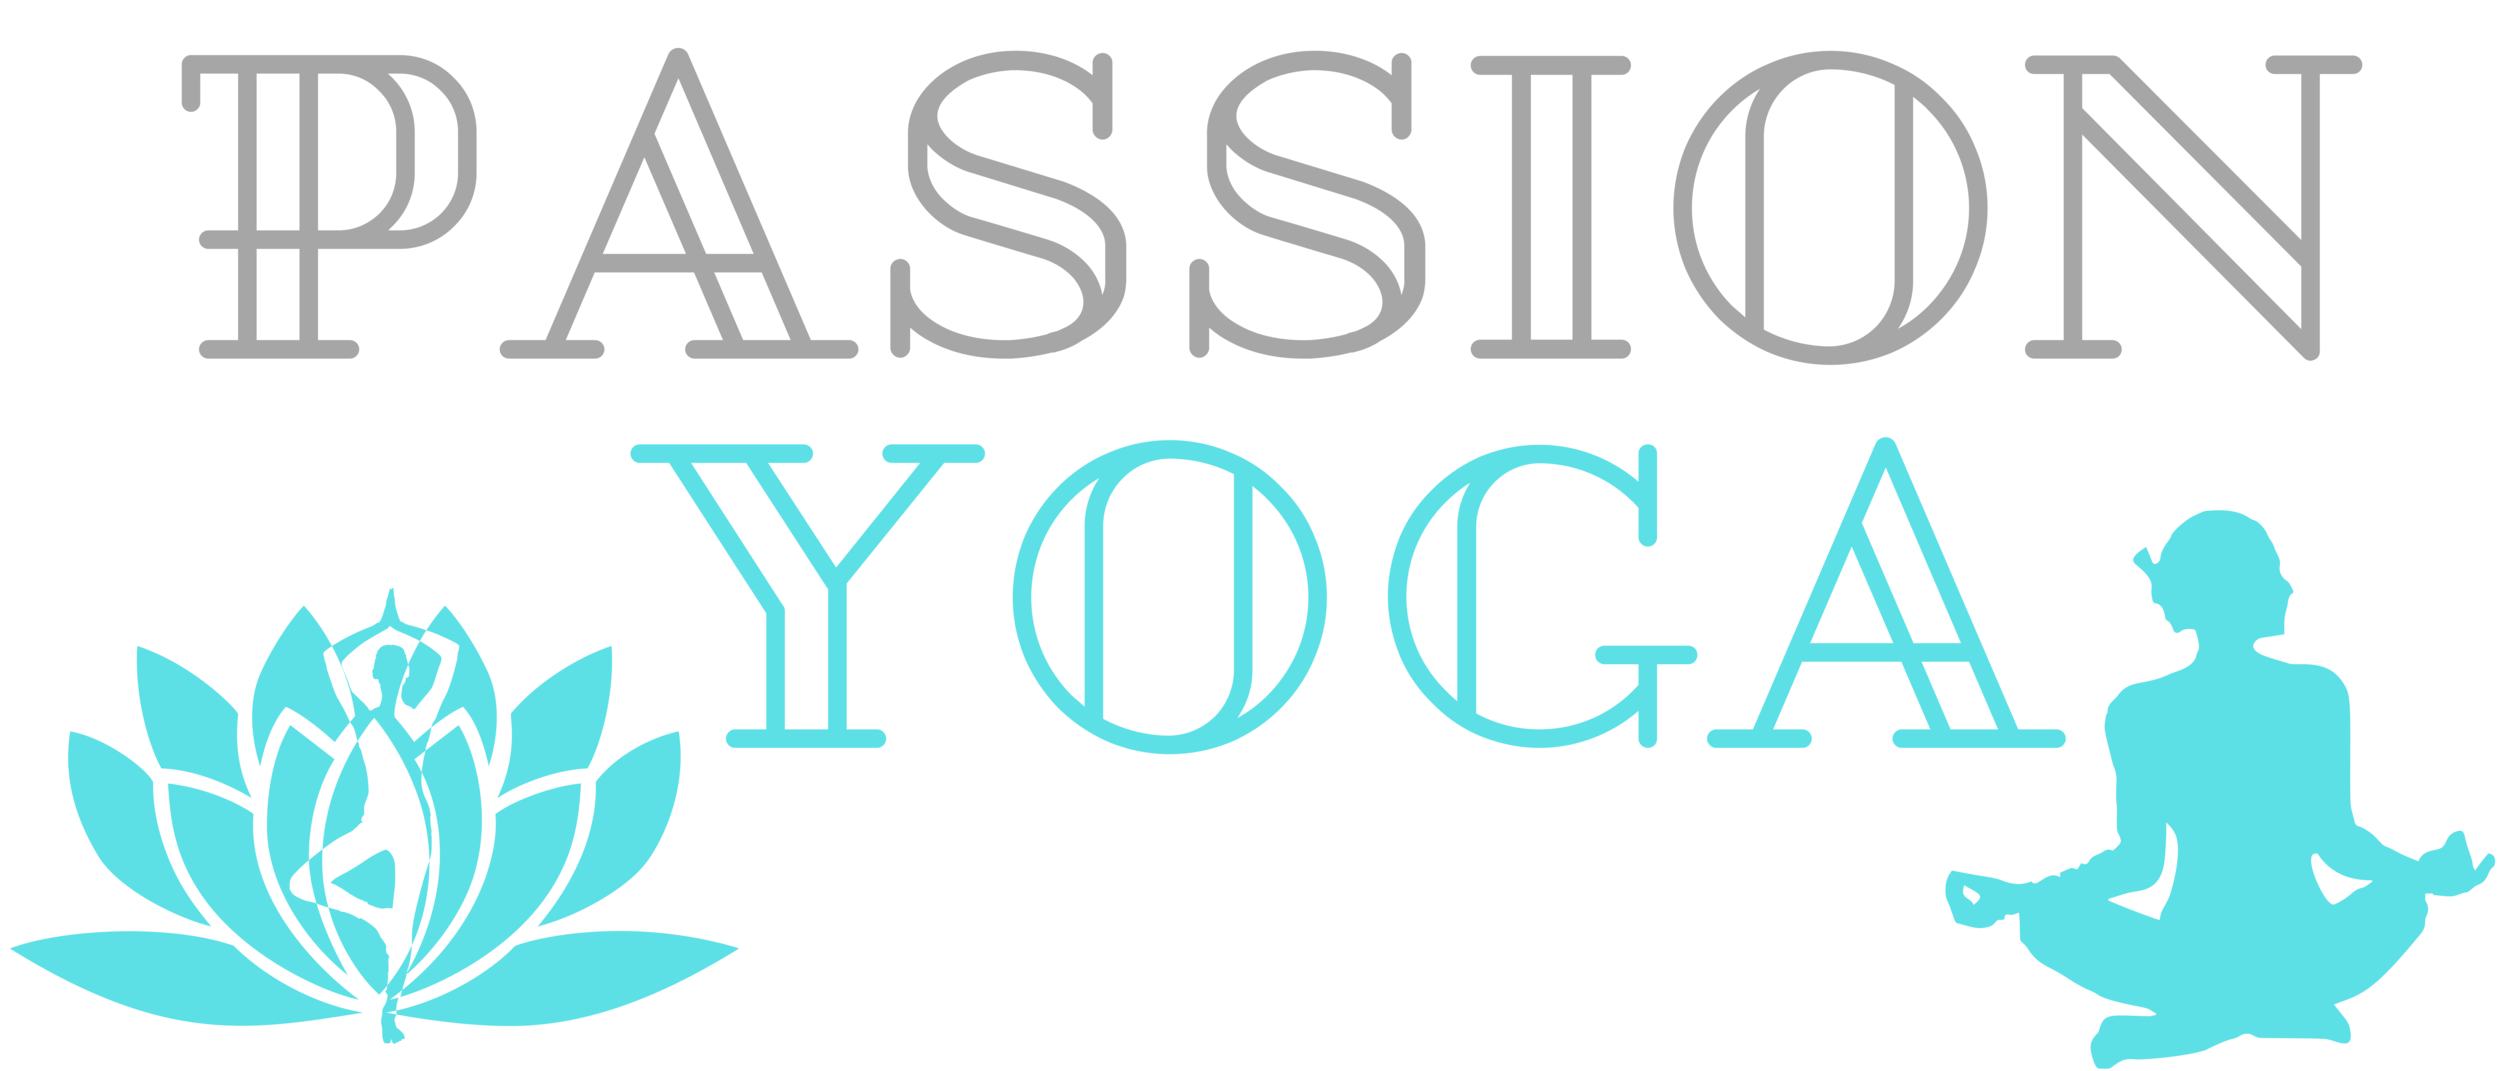 Passion Yoga - Ma Boutique Yogi